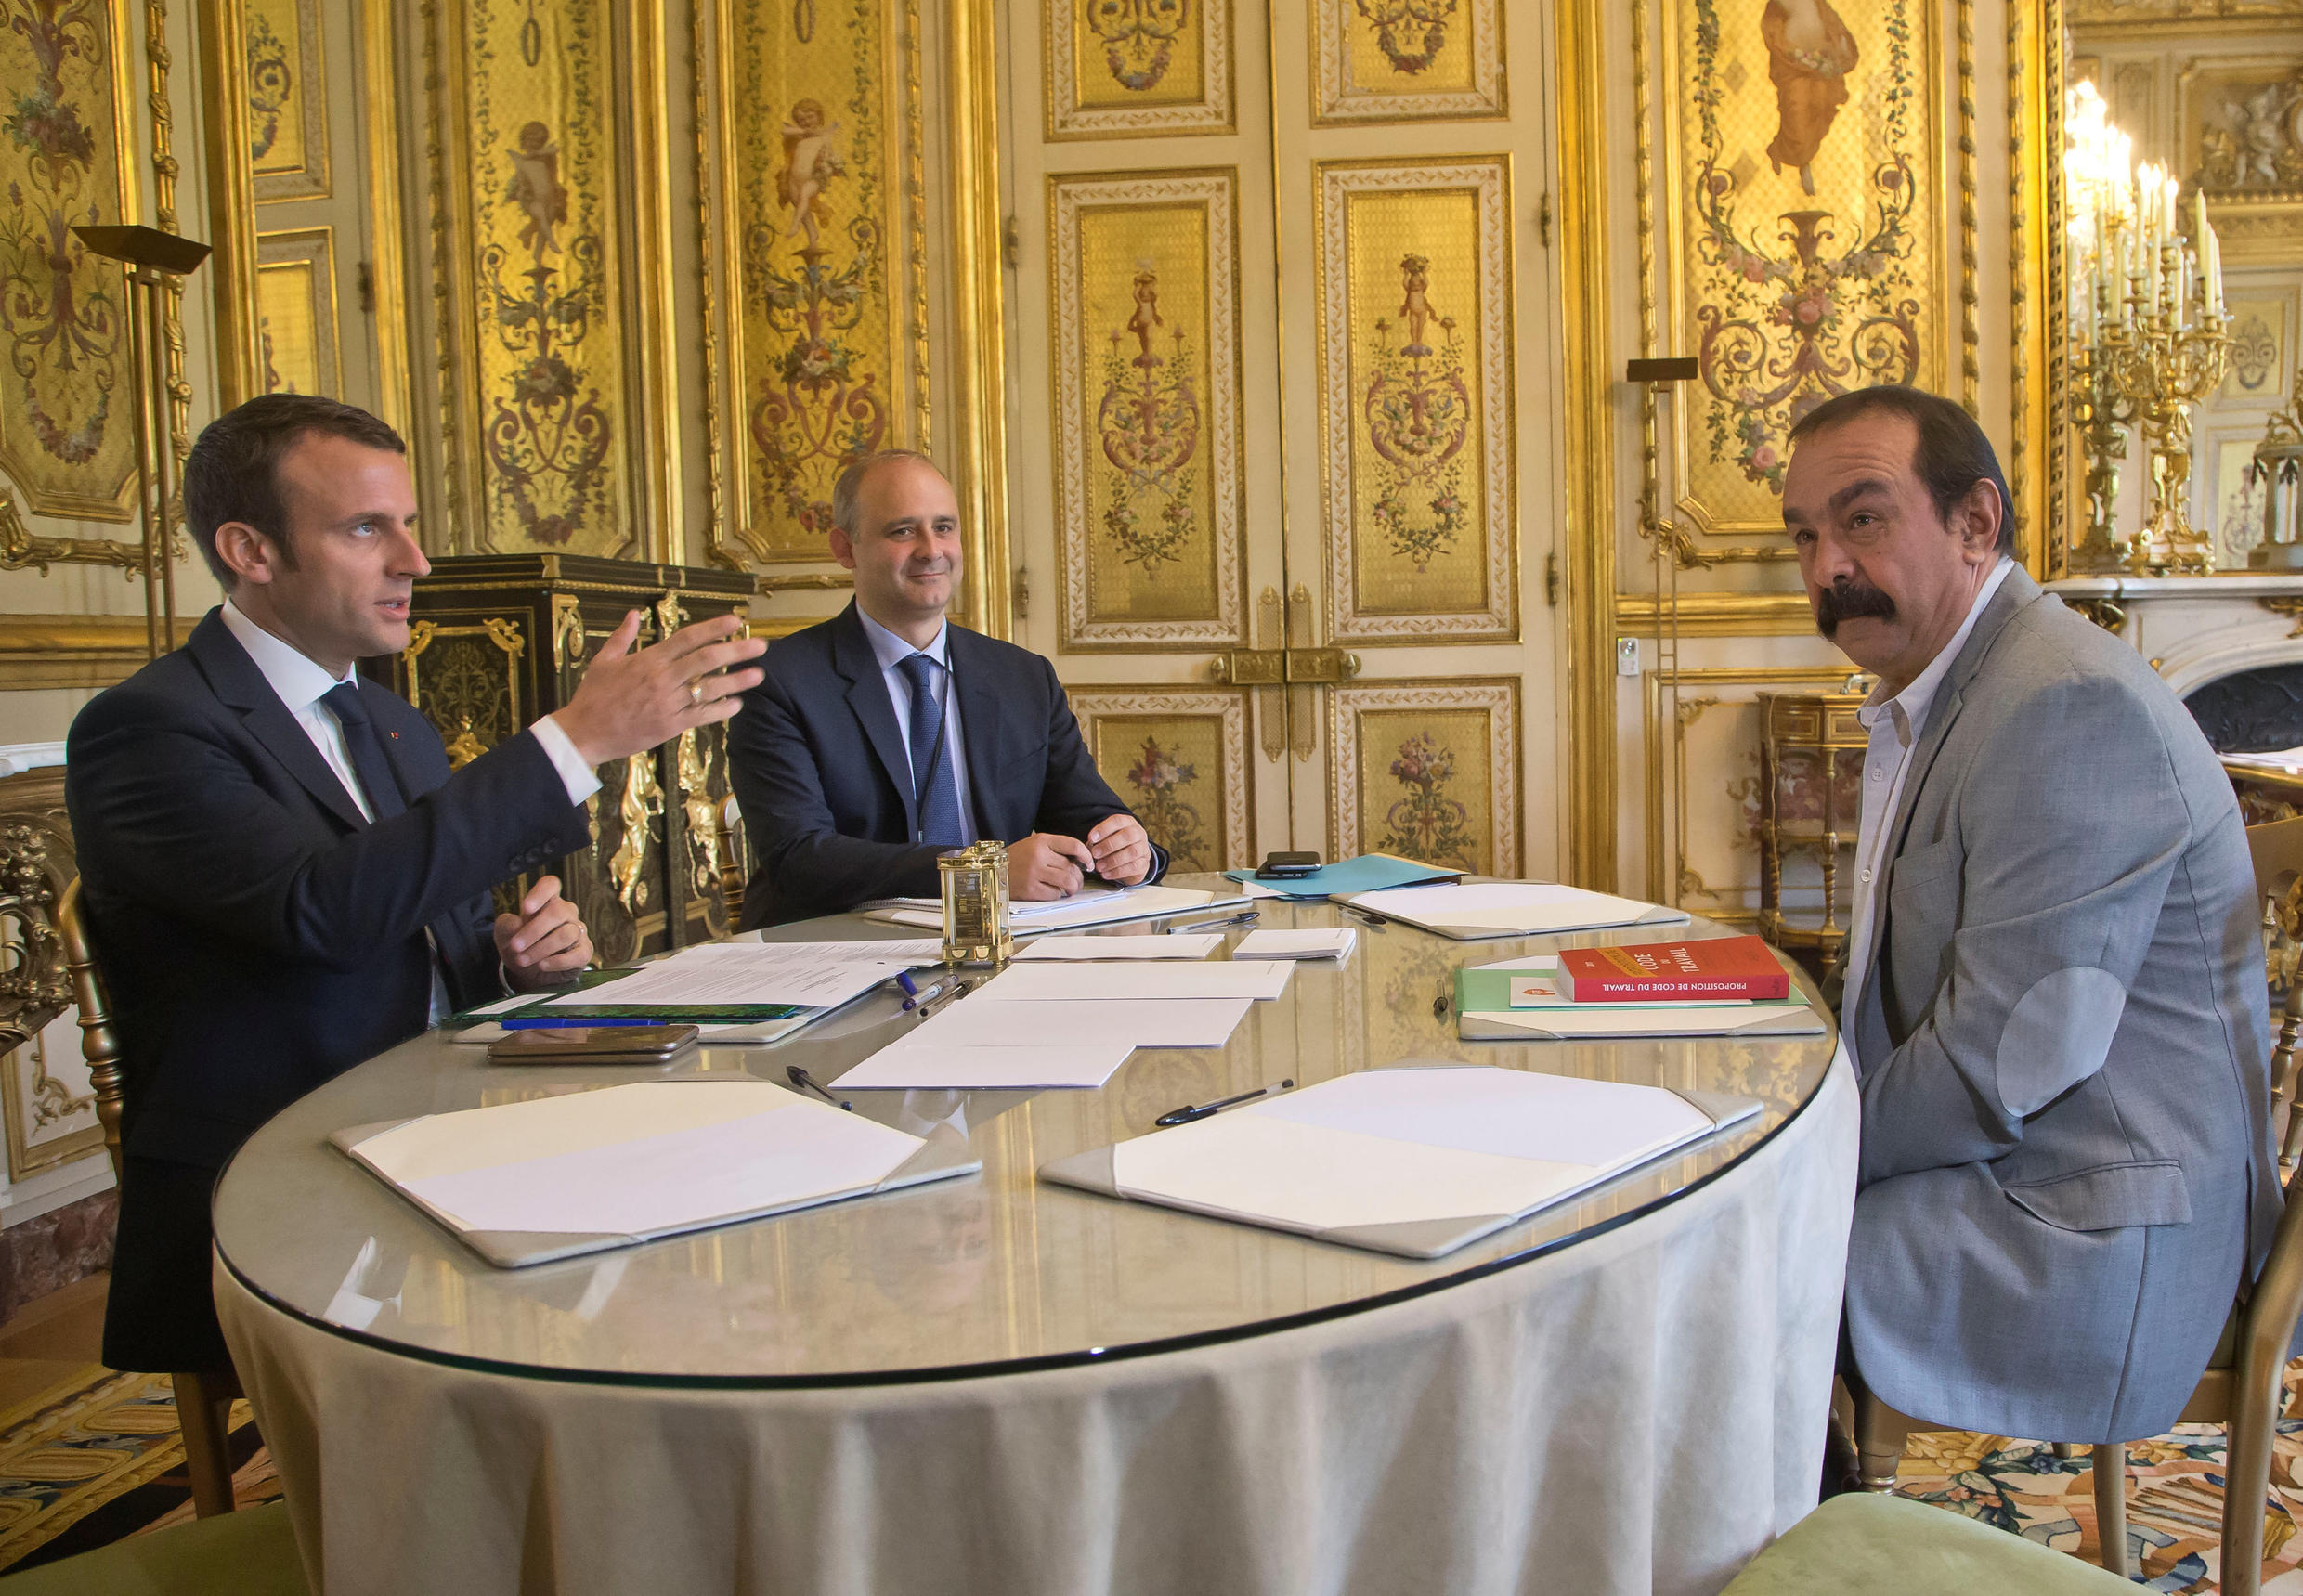 French President Emmanuel Macron (L) meets with CGT labour union leader Philippe Martinez at the Elysee Palace in Paris, France, May 23, 2017.